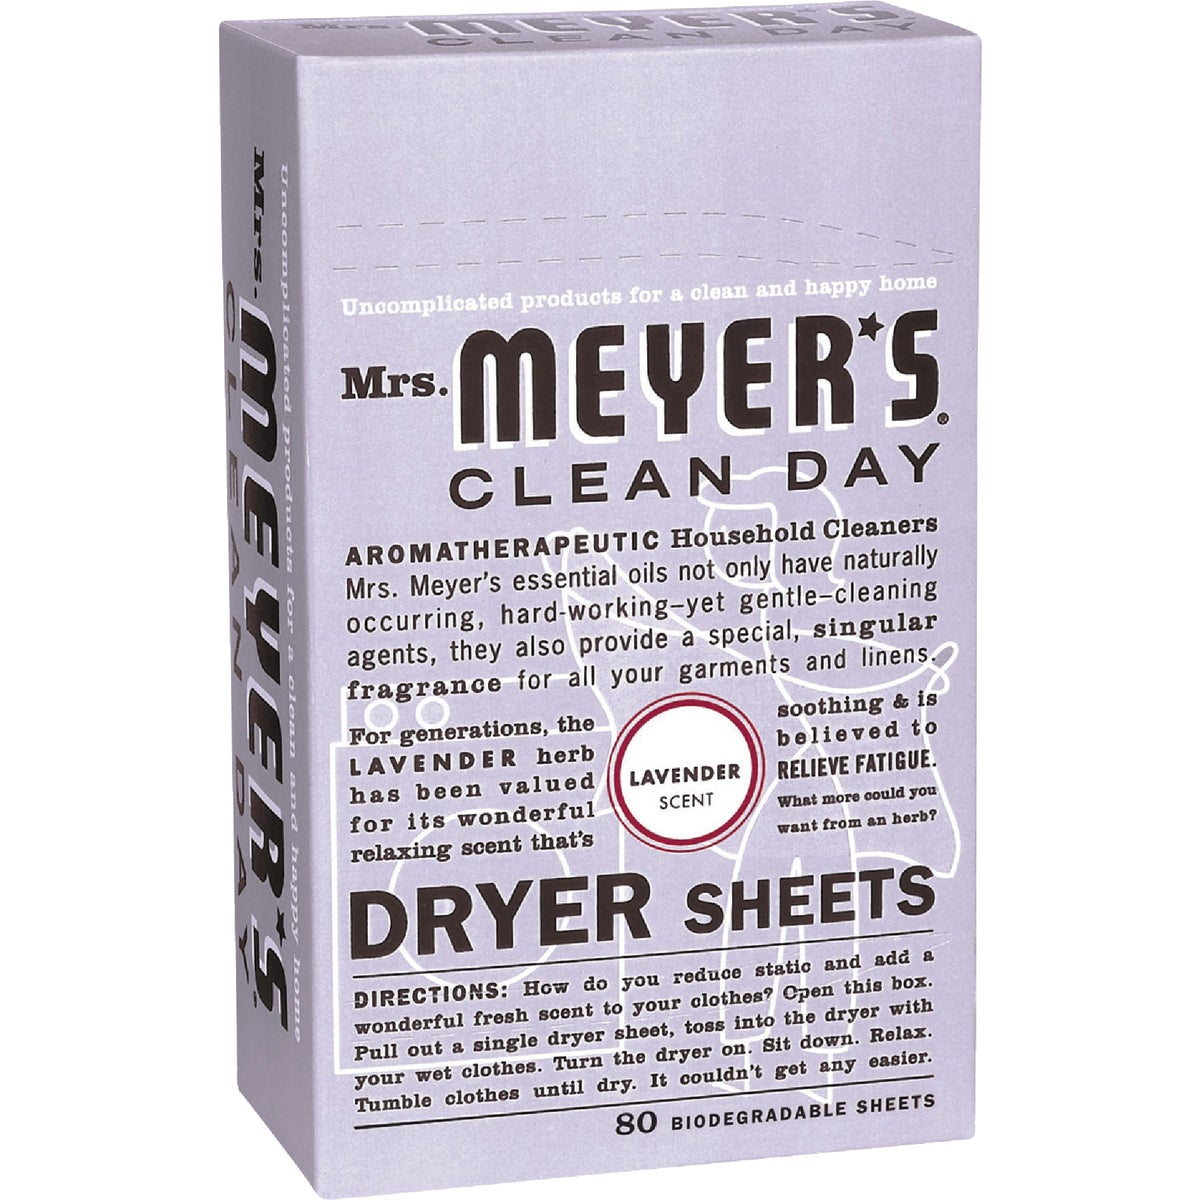 LAVENDER DRYER SHEETS - 14148 by Mrs Meyers Clean Day